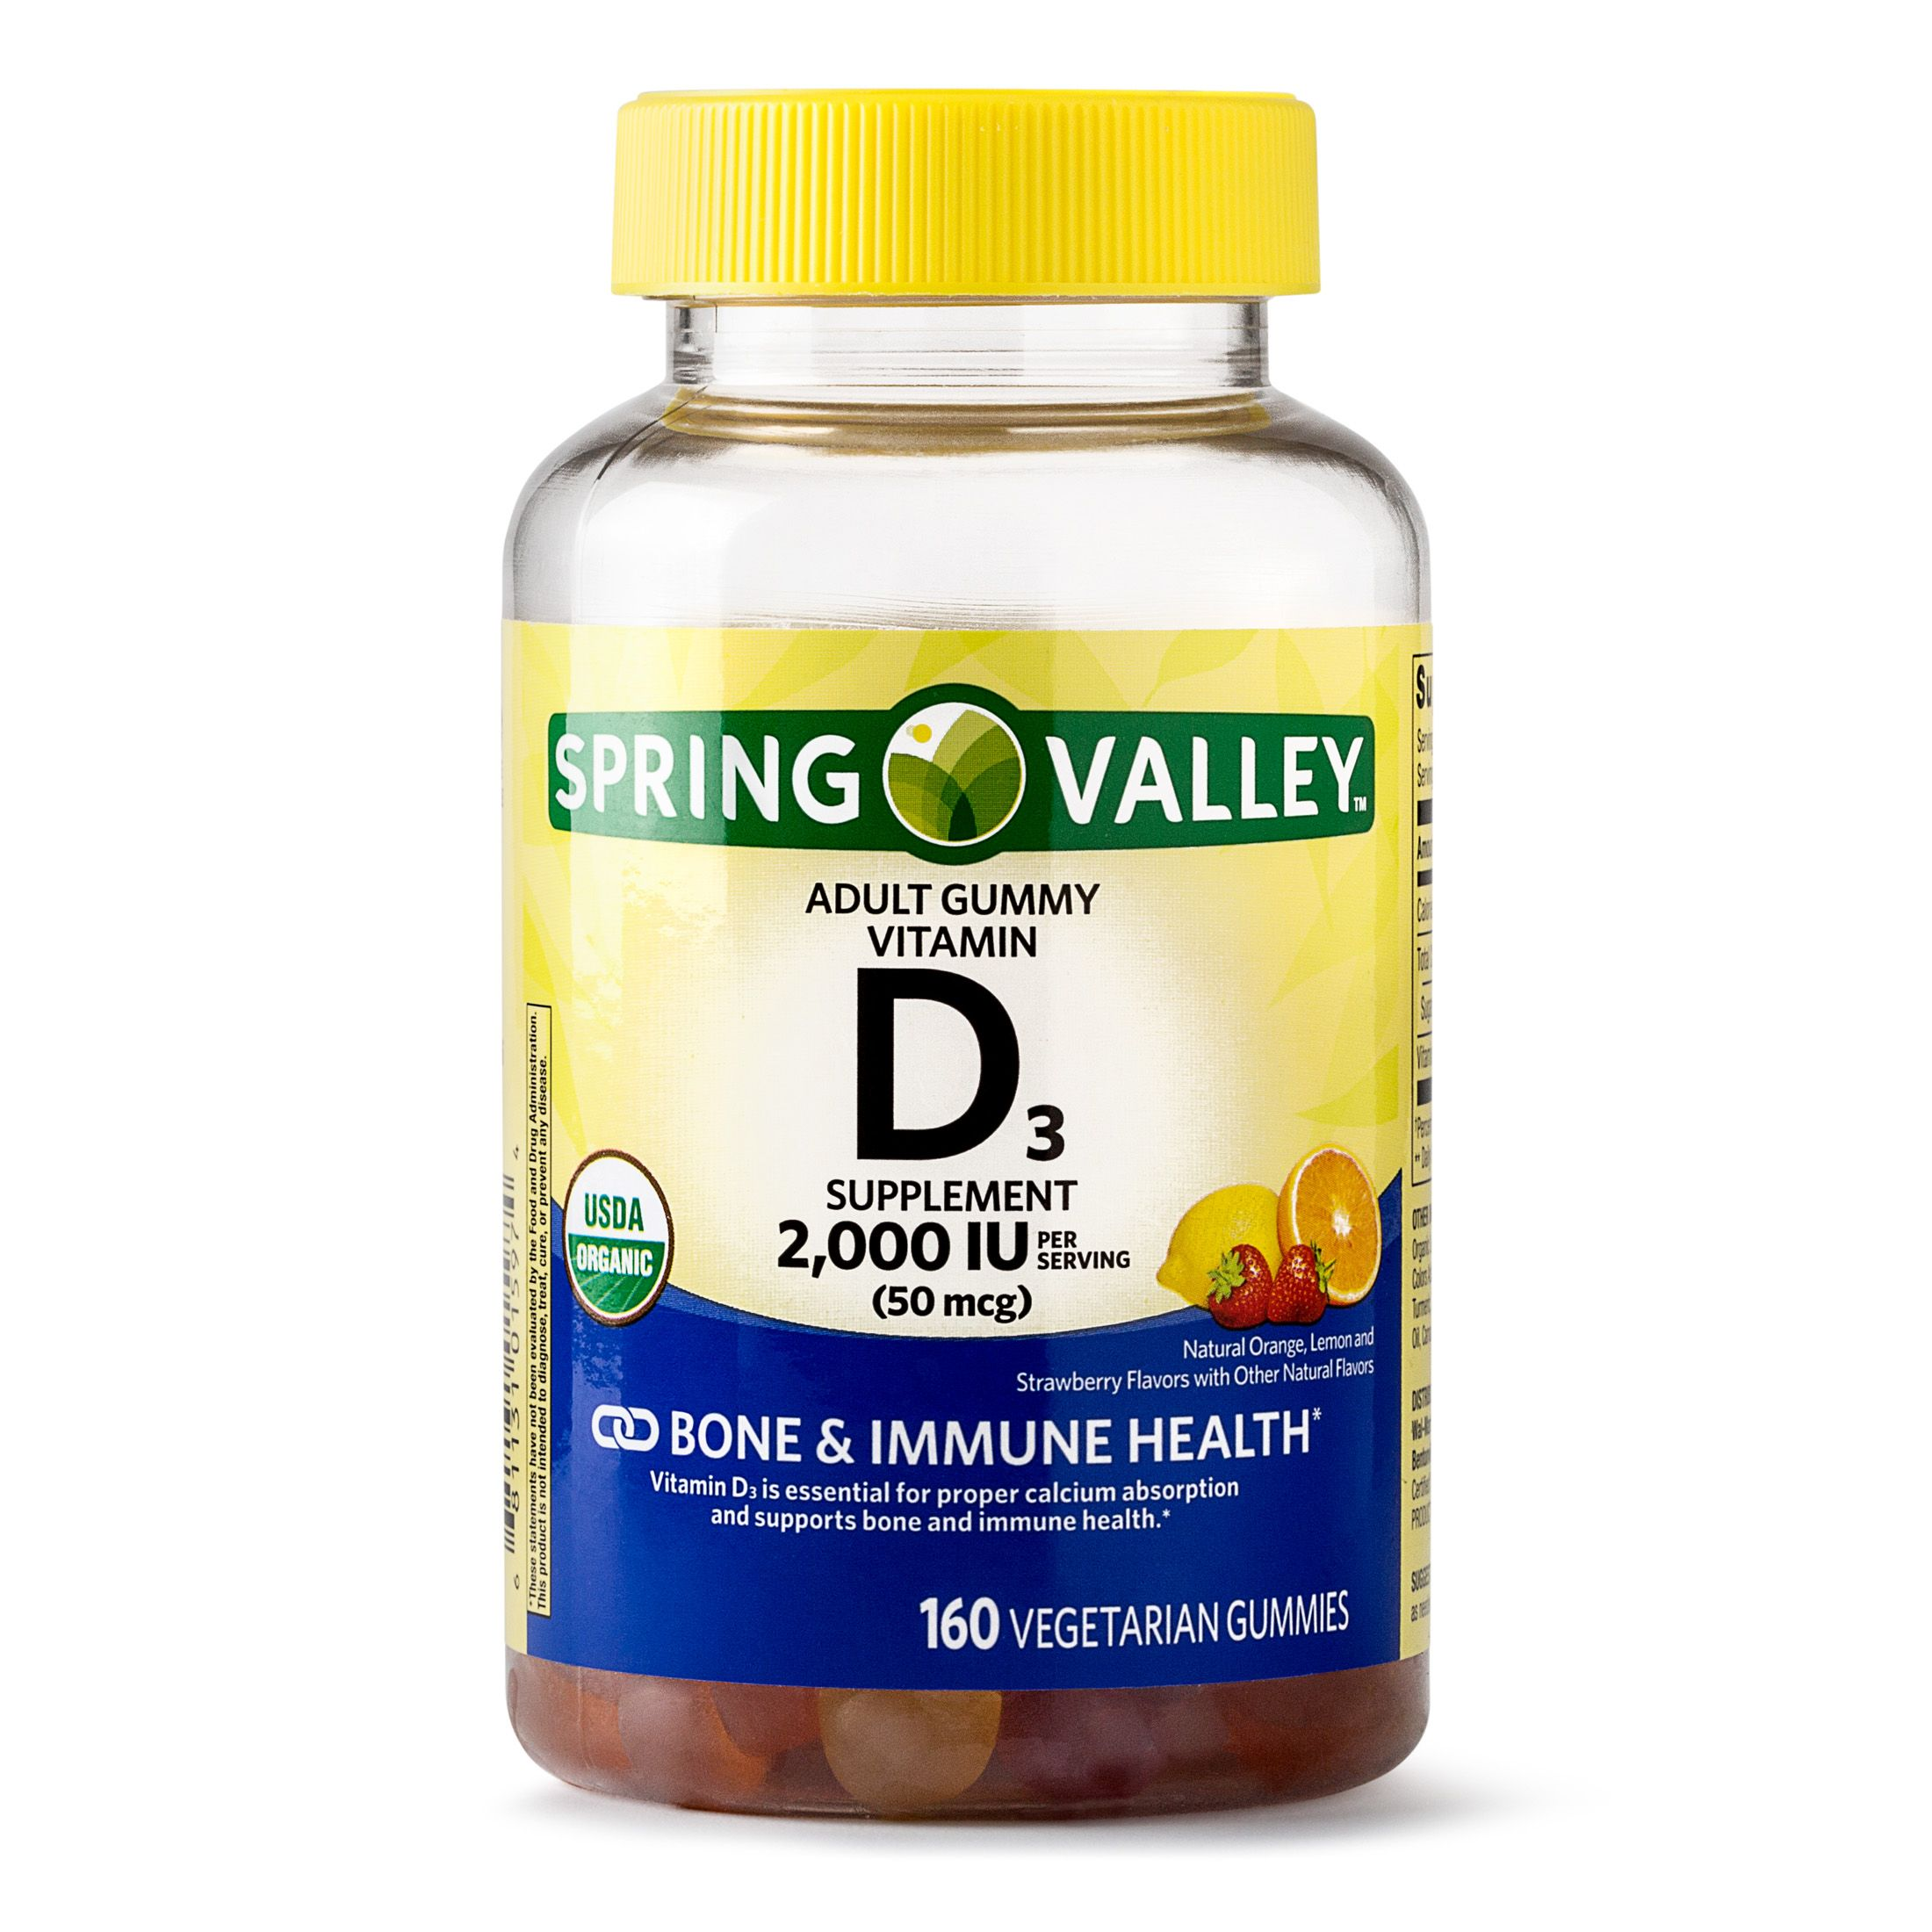 Free 2 Day Shipping Buy Spring Valley Vitamin D3 Gummy 2000 Iu 50 Mcg 160 Ct At Walmart Com In 2020 Vitamins For Vegetarians Spring Valley Vitamins